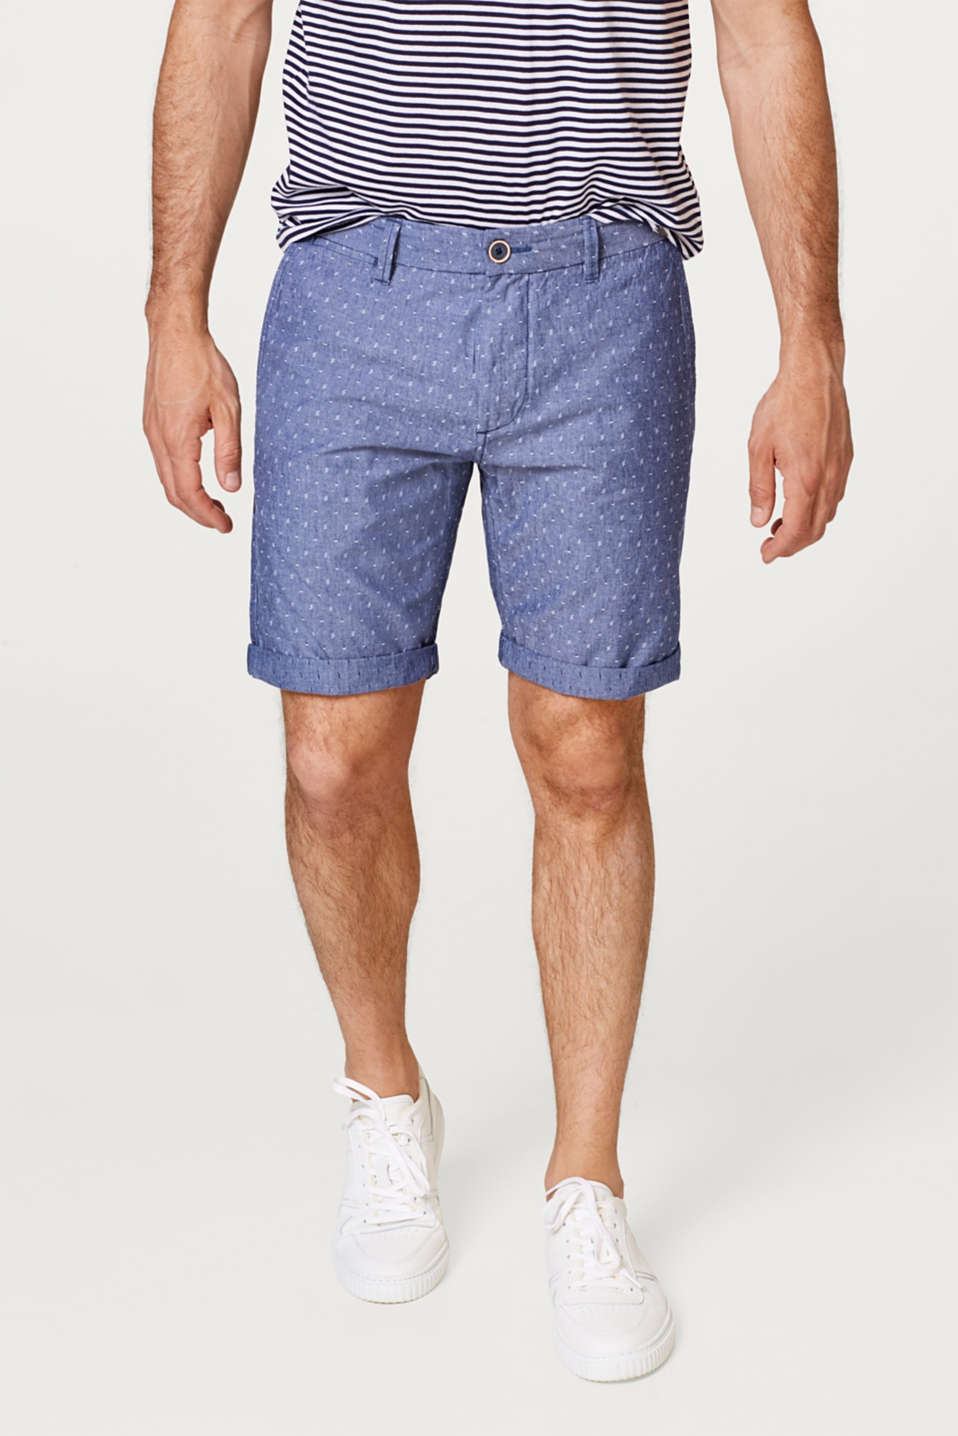 Esprit - Chambray shorts with a textured pattern, made of cotton